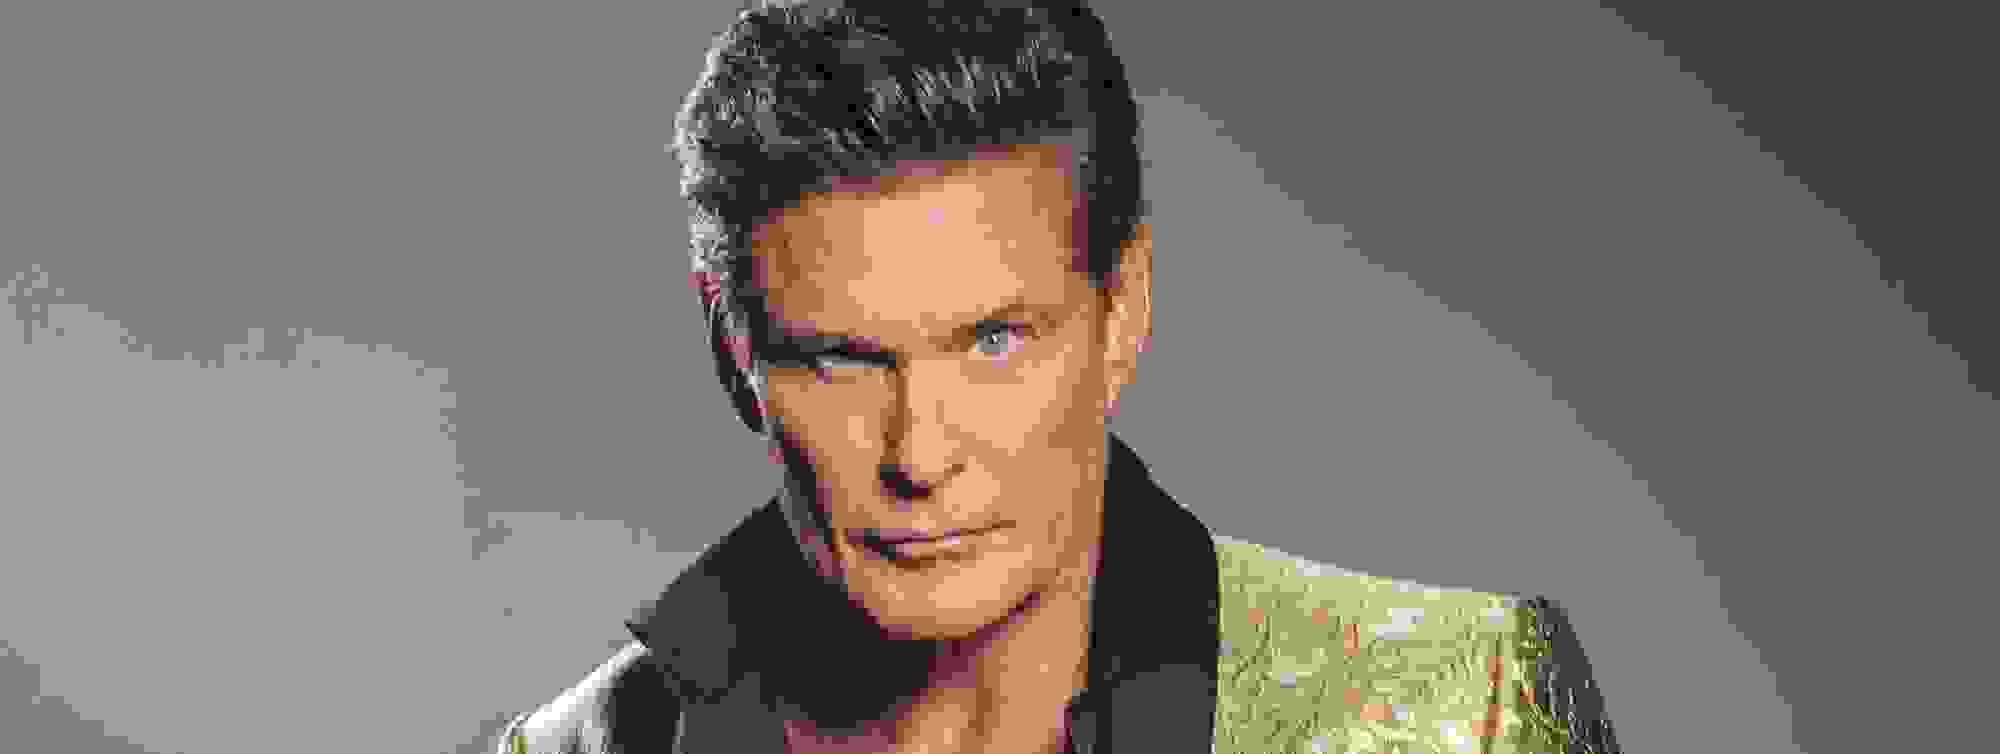 The Hoff Official Press Photo 2019_klein Credit KBK GmbH.jpg